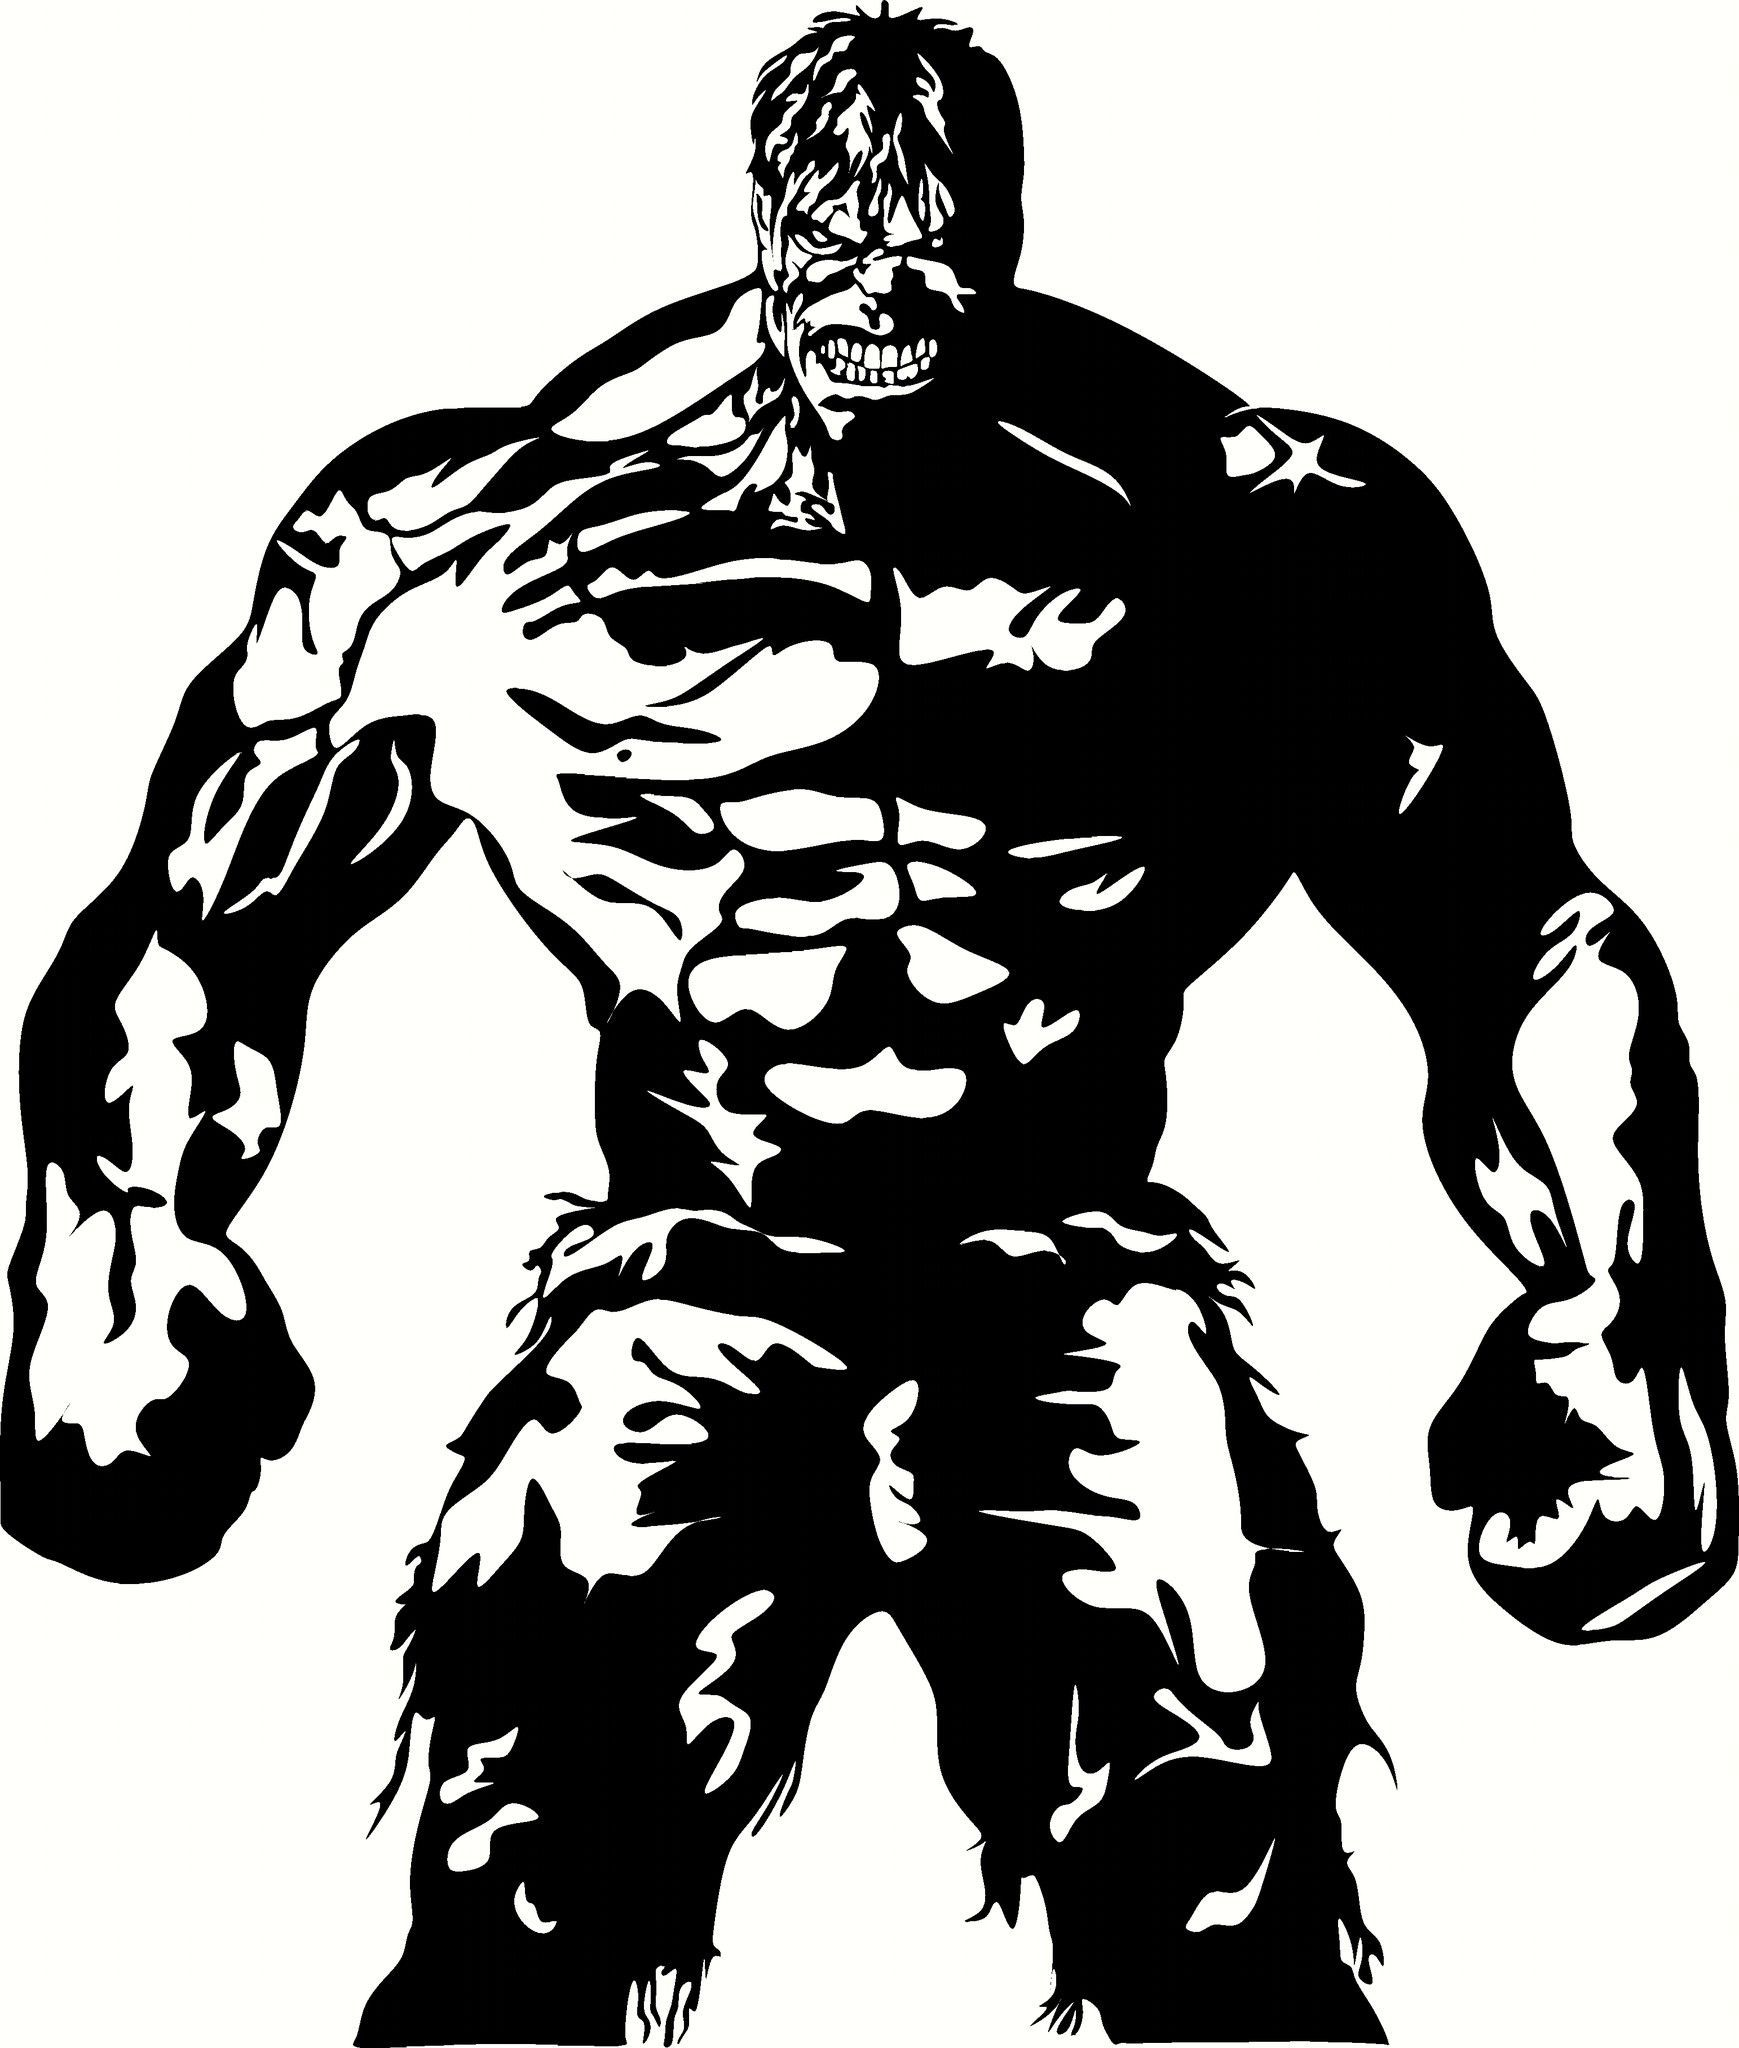 Hulk on motorcycle black and white clipart image transparent stock Incredible Hulk Vinyl Cut Out Decal - Choose your Color and ... image transparent stock